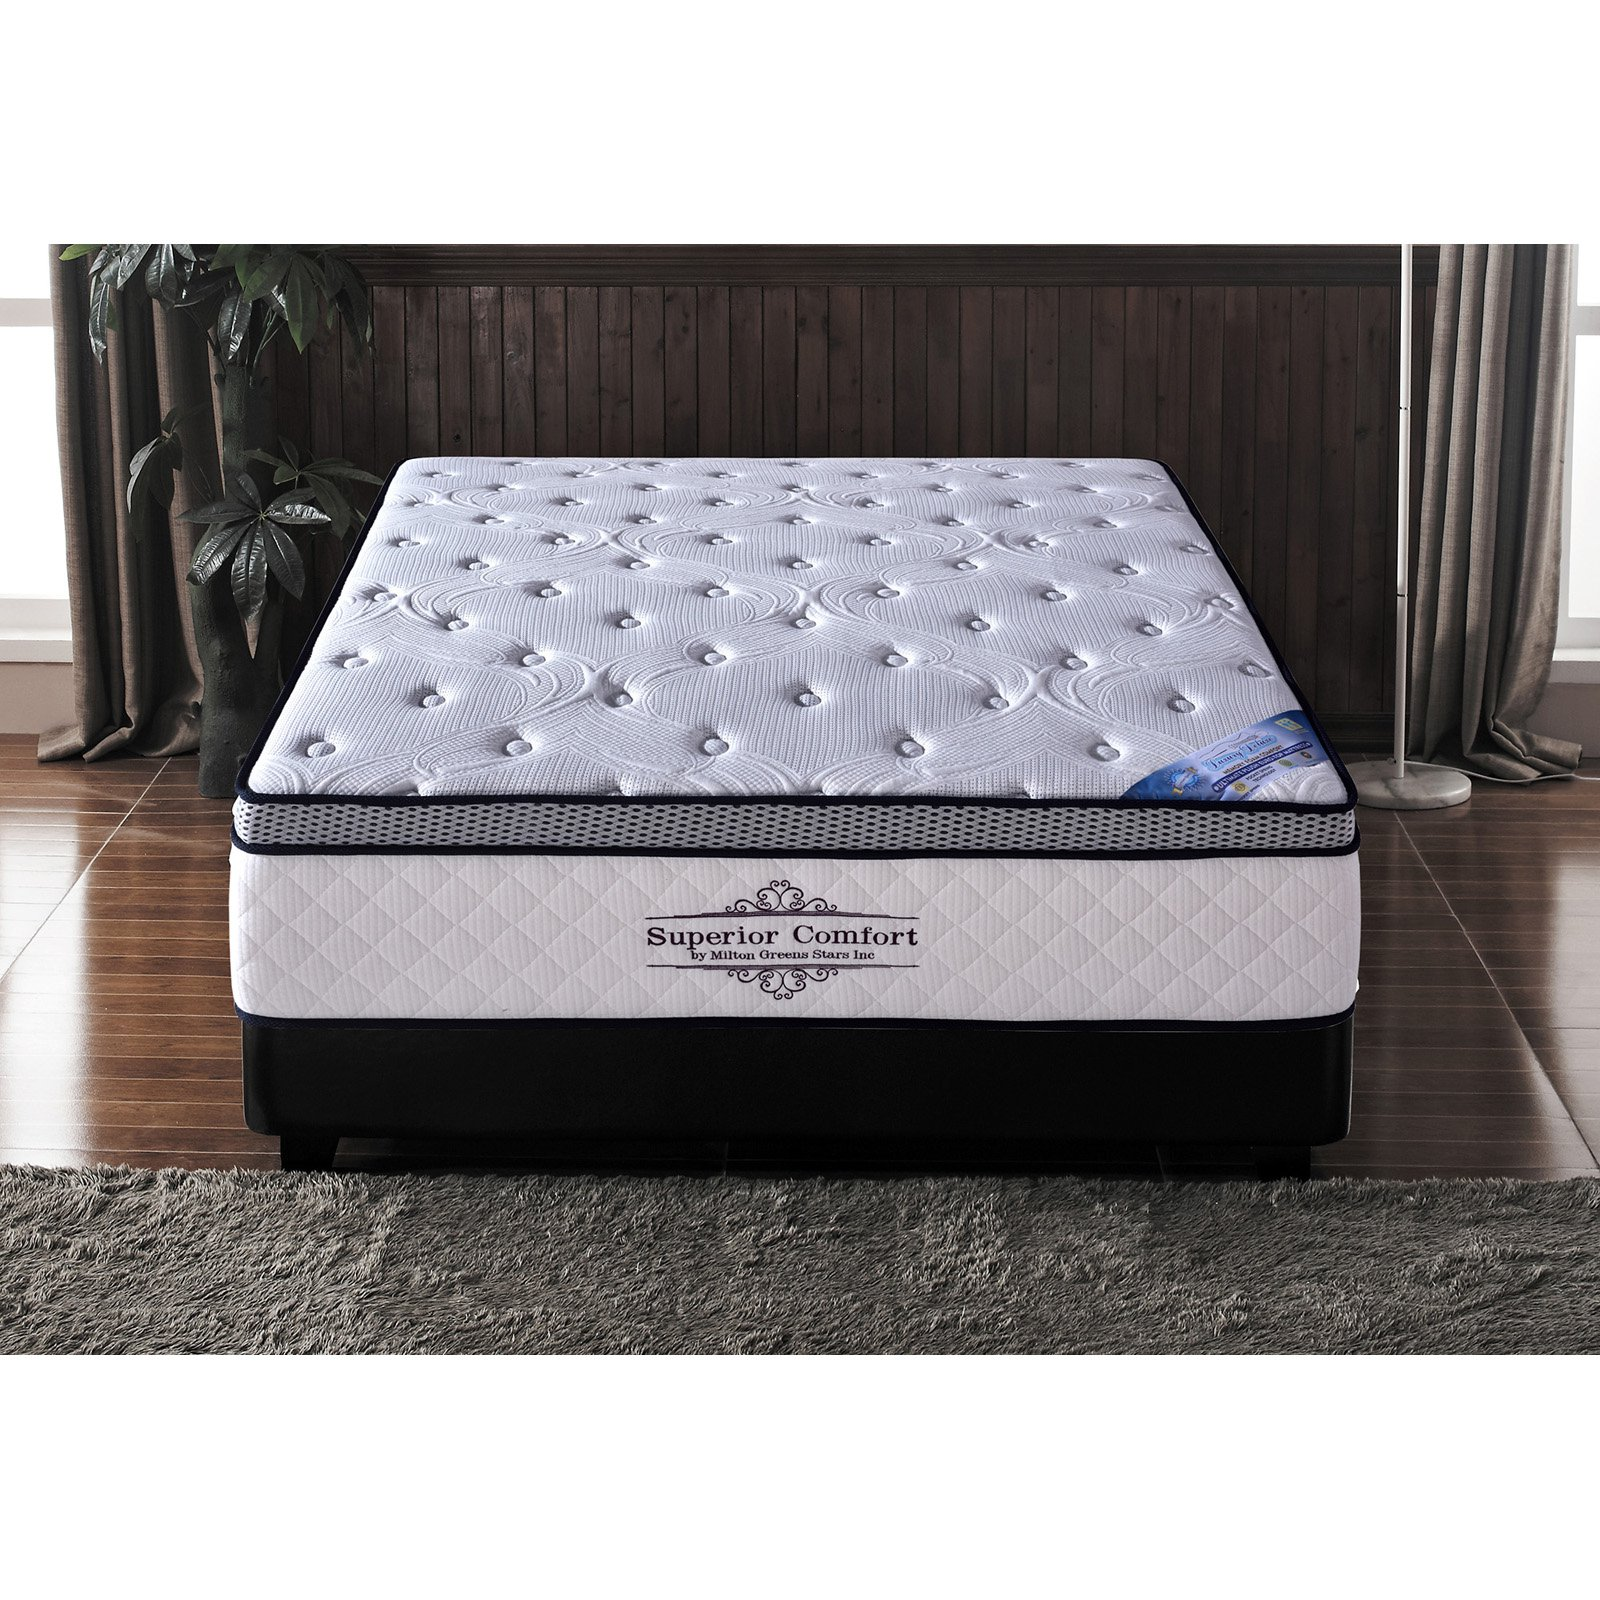 Milton Greens Stars Superior Comfort 15 in. Memory Foam and Pocketed Coil Hybrid Mattress